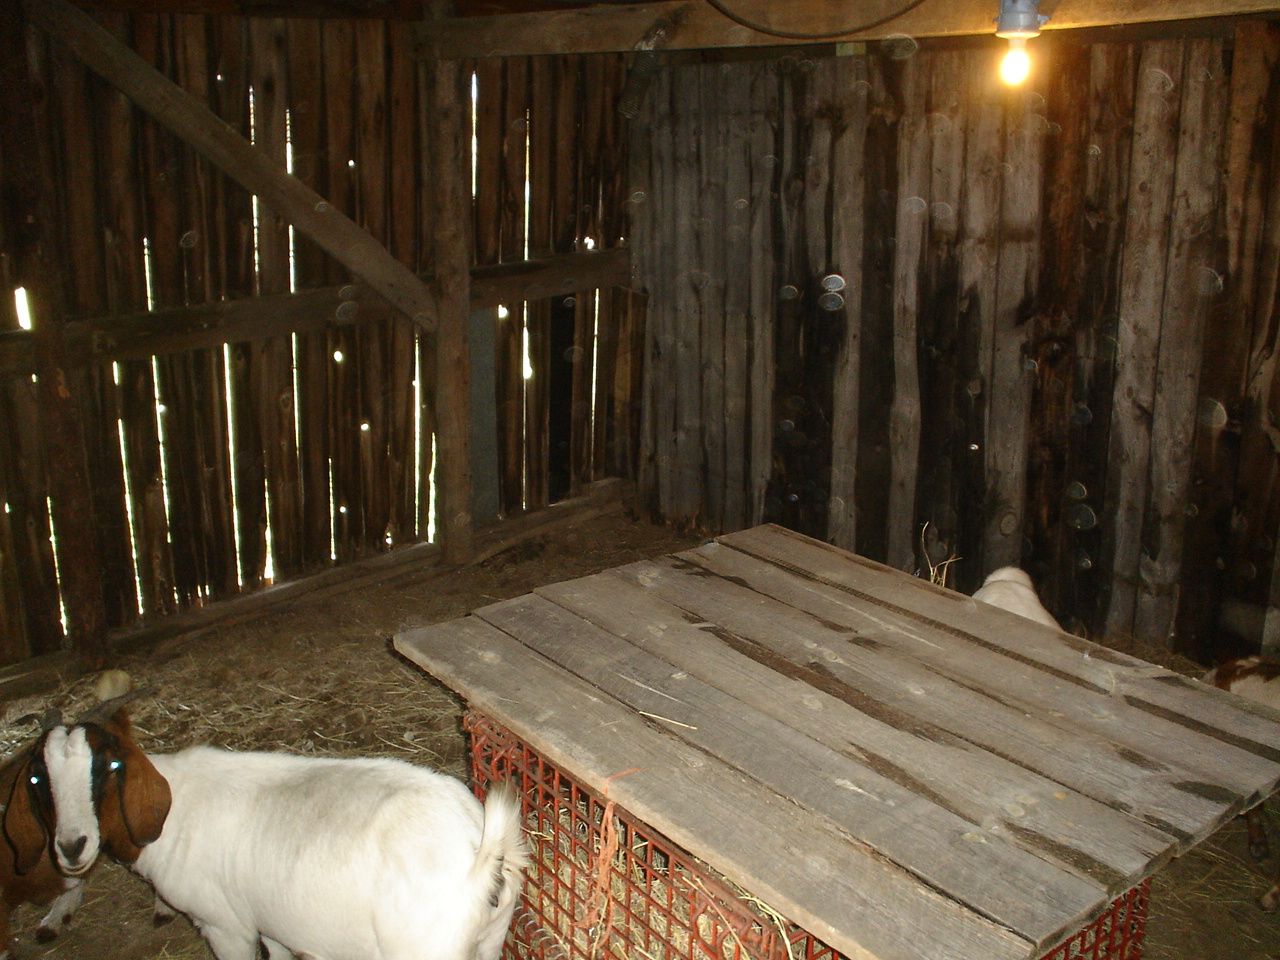 The main goat barn